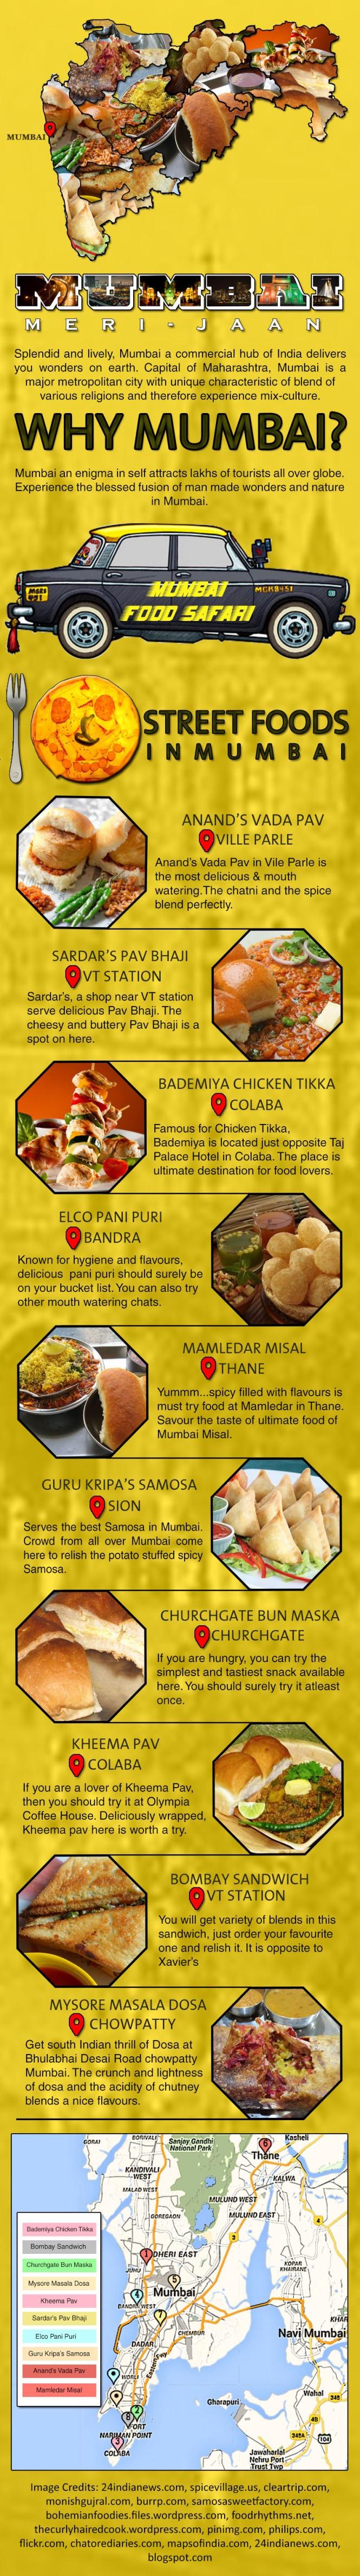 Top 10 street Food to enjoy in Mumbai